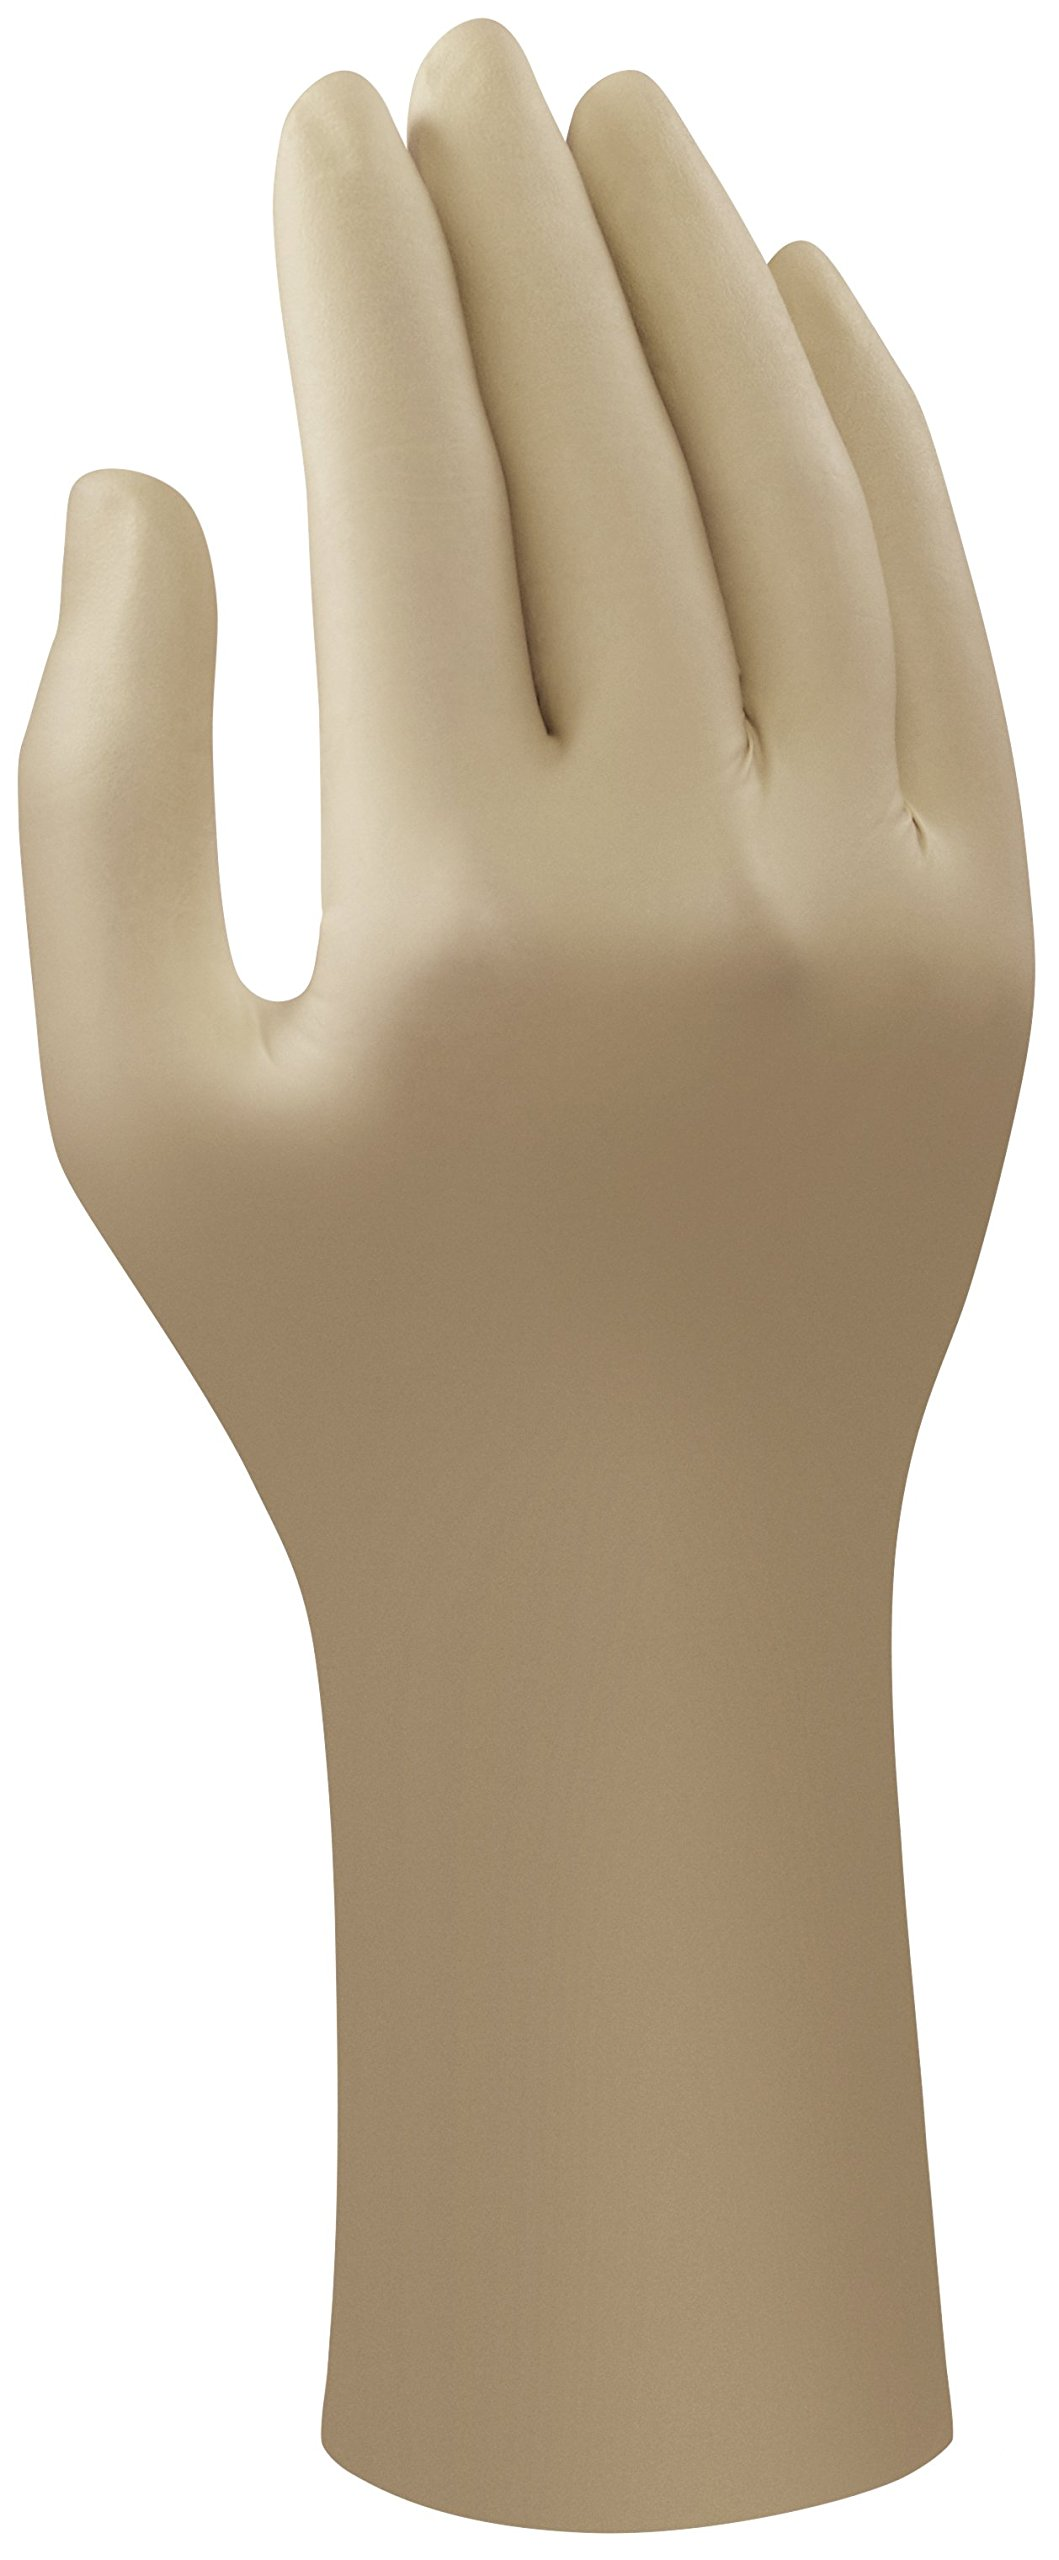 Ansell Accutech 91-870 Latex Glove, Powder Free, Rolled Beaded Cuff, 12'' Length, 8 mils Thick, Small (Pack of 120 Pairs)